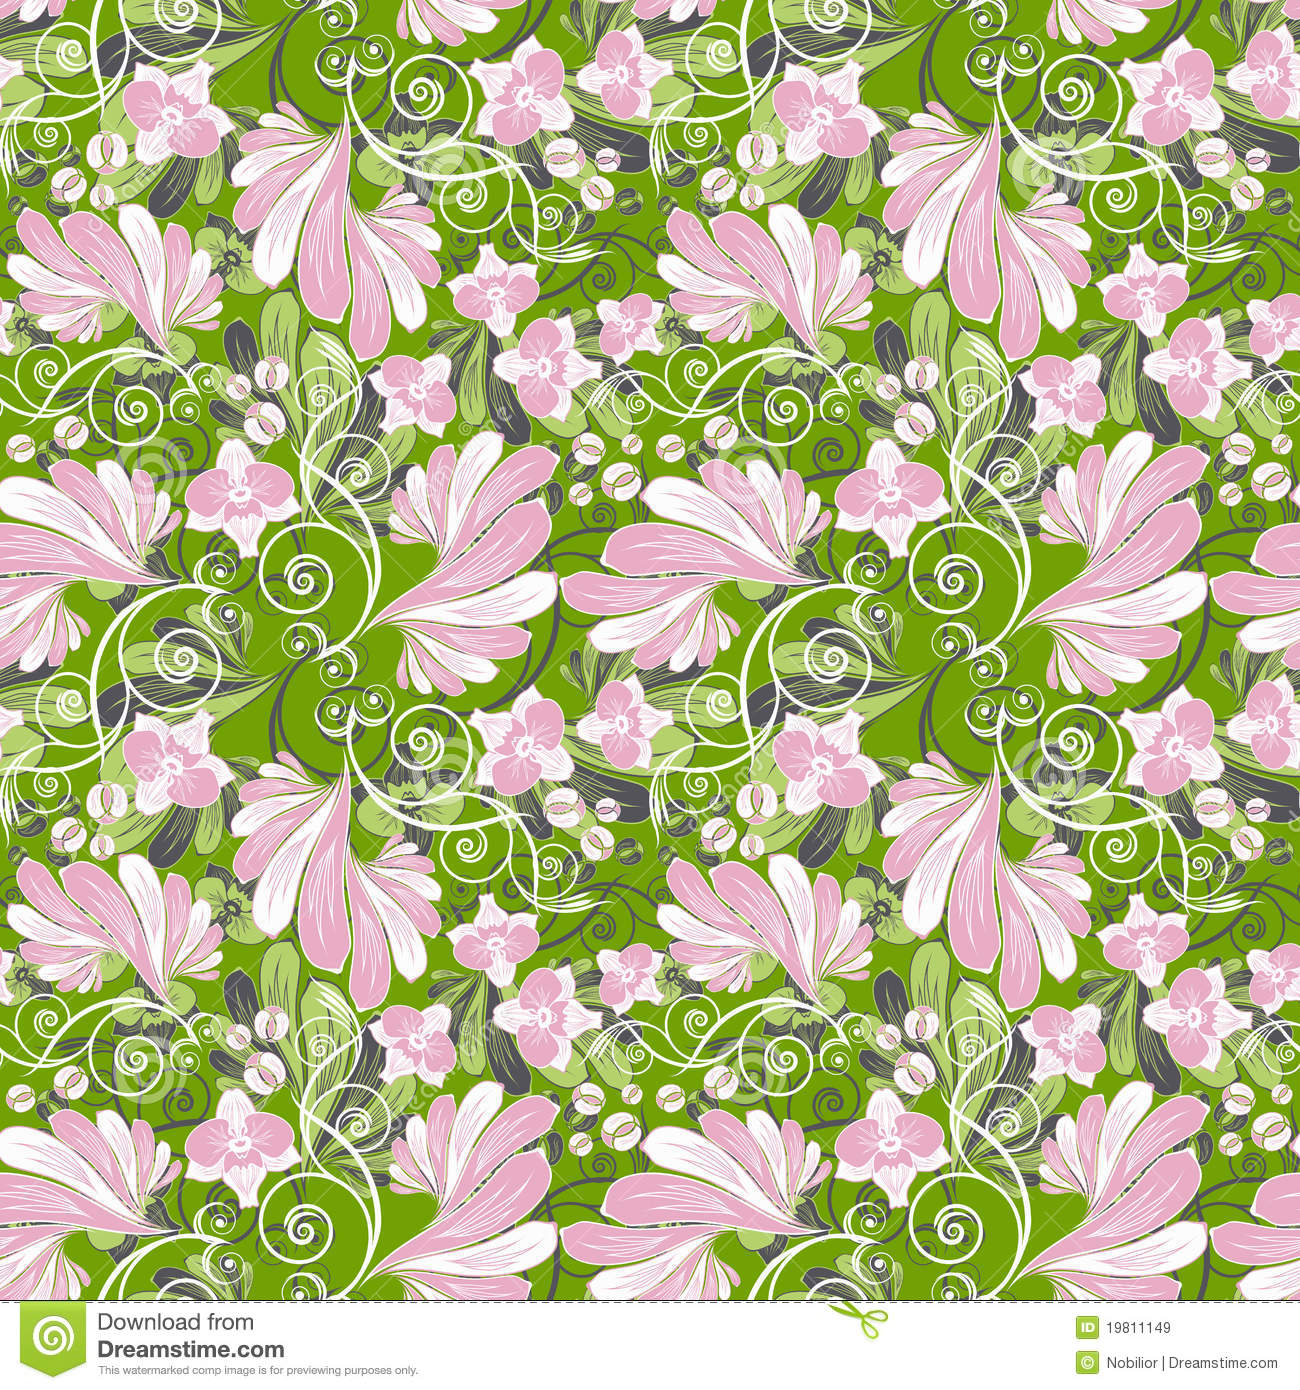 Seamless floral background with orchids